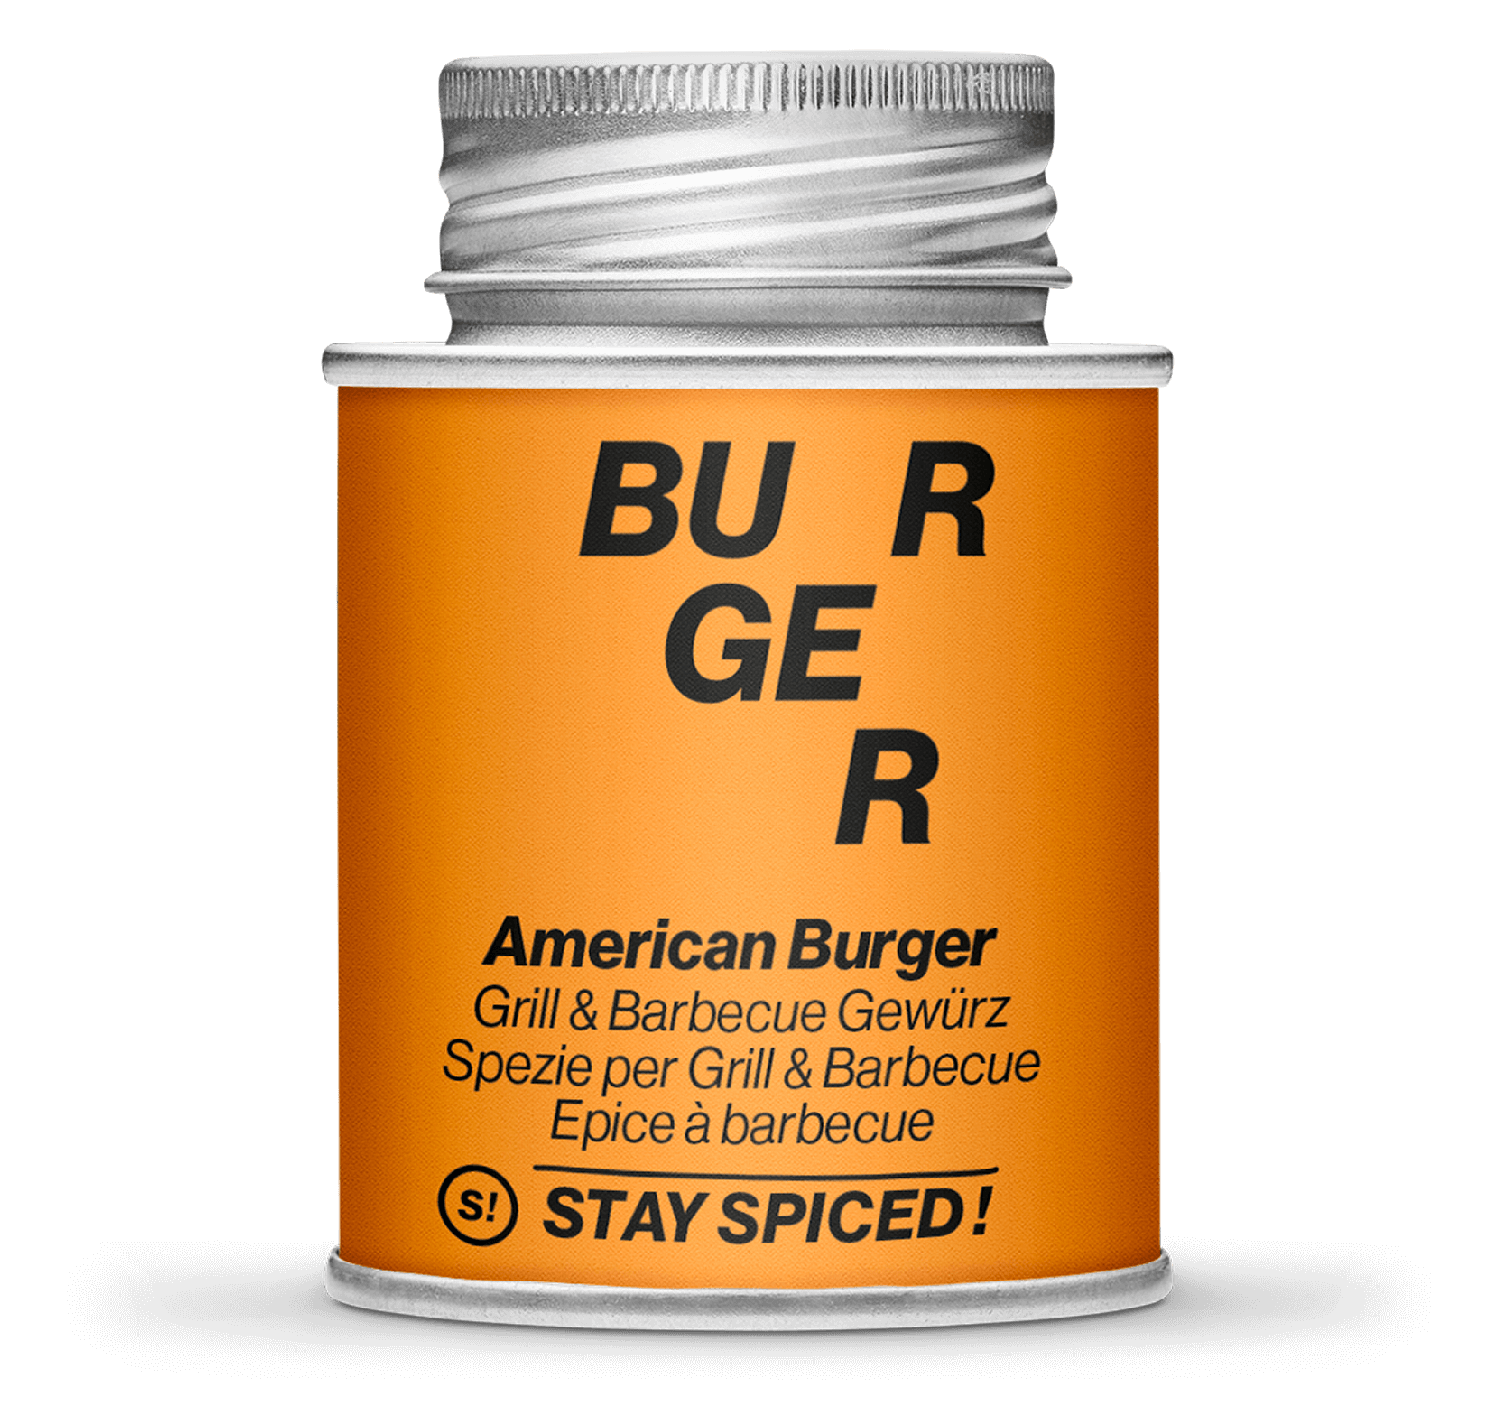 Barbecue-for-Champions - Burgergewürz - American Classic Style